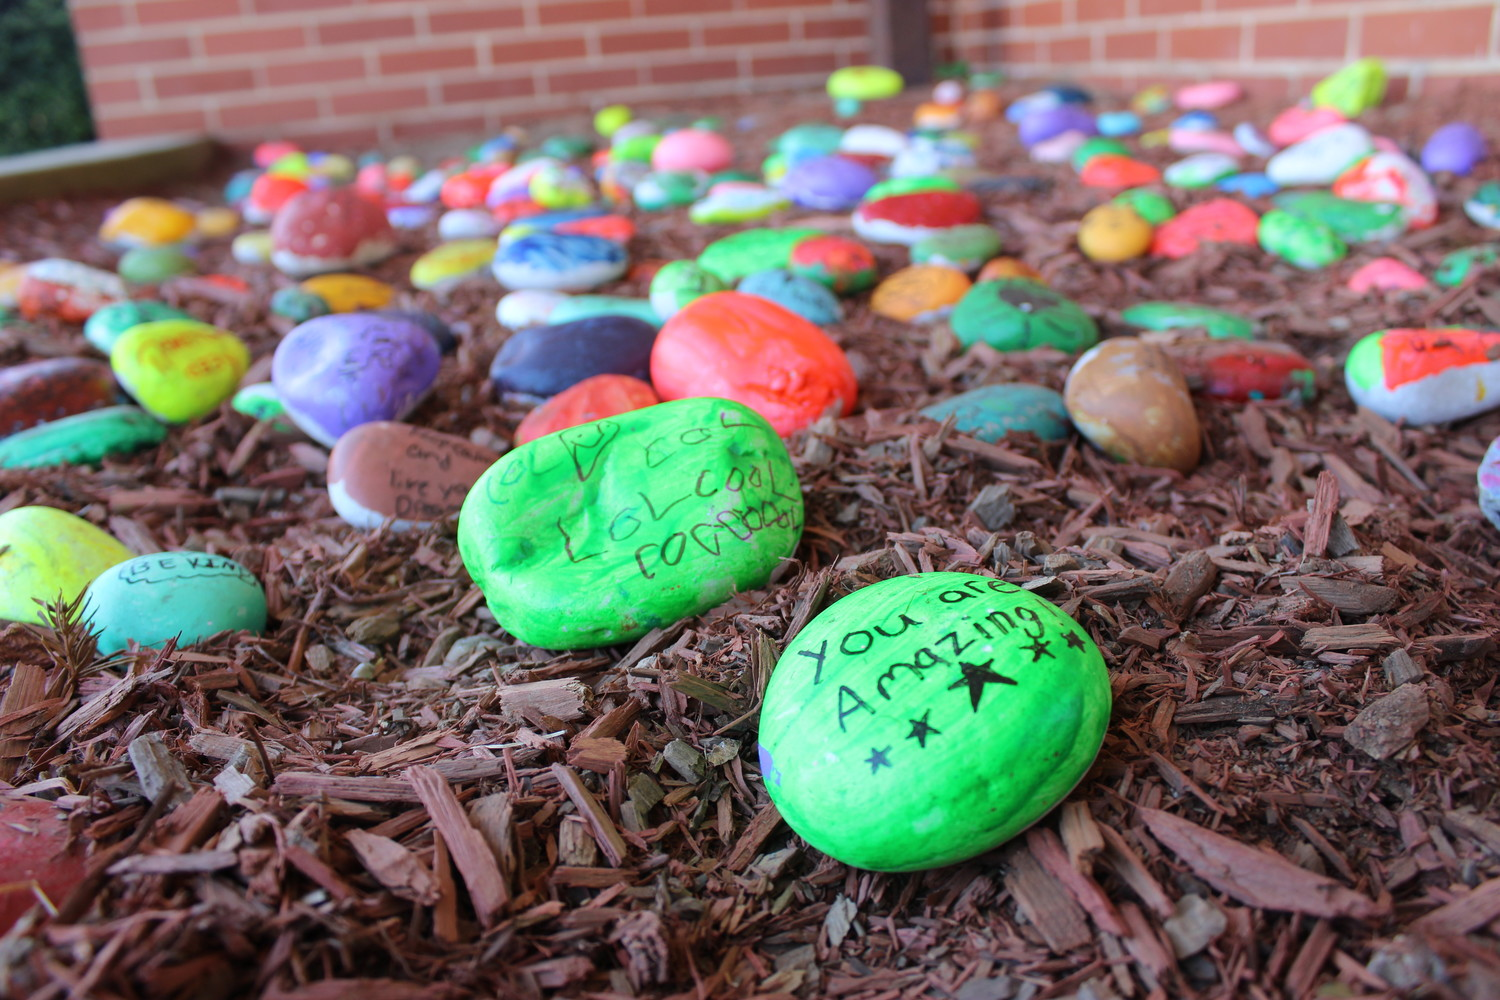 Sixth-grade students painted rocks and inscribed on them uplifting messages before placing them throughout the Bellmore community for residents to find.